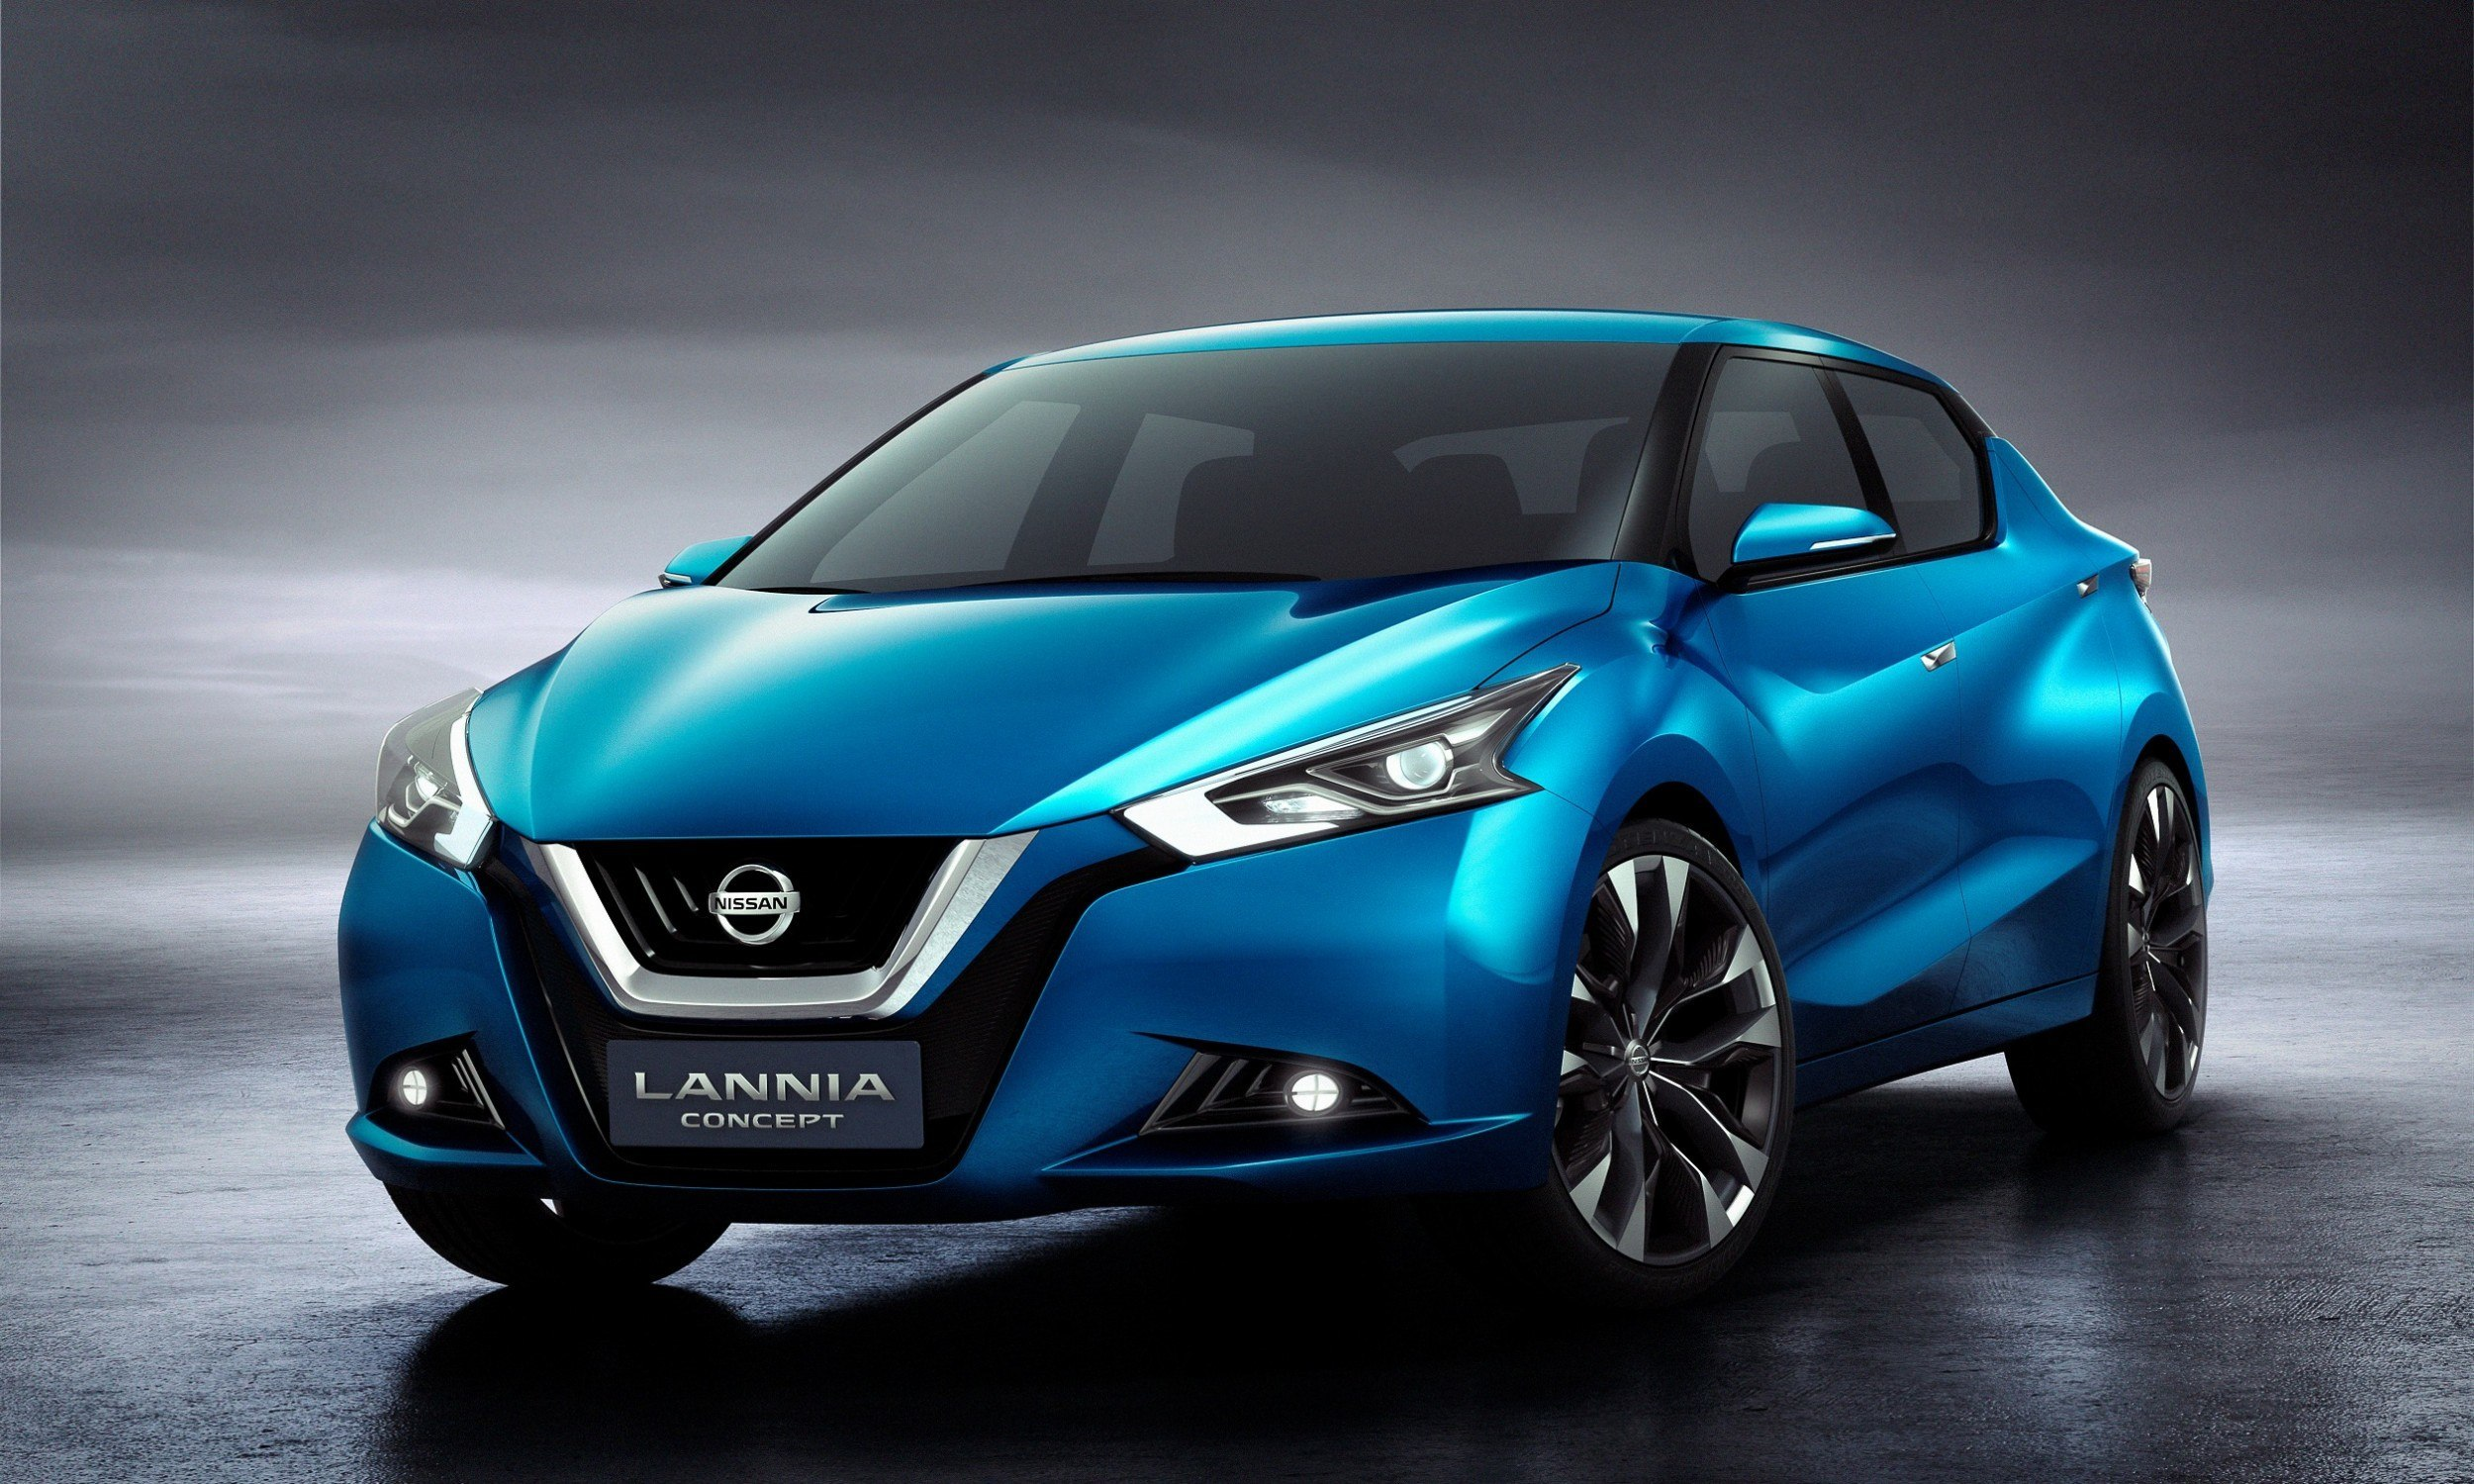 Images of 2014 Nissan Lannia Concept   2500x1500